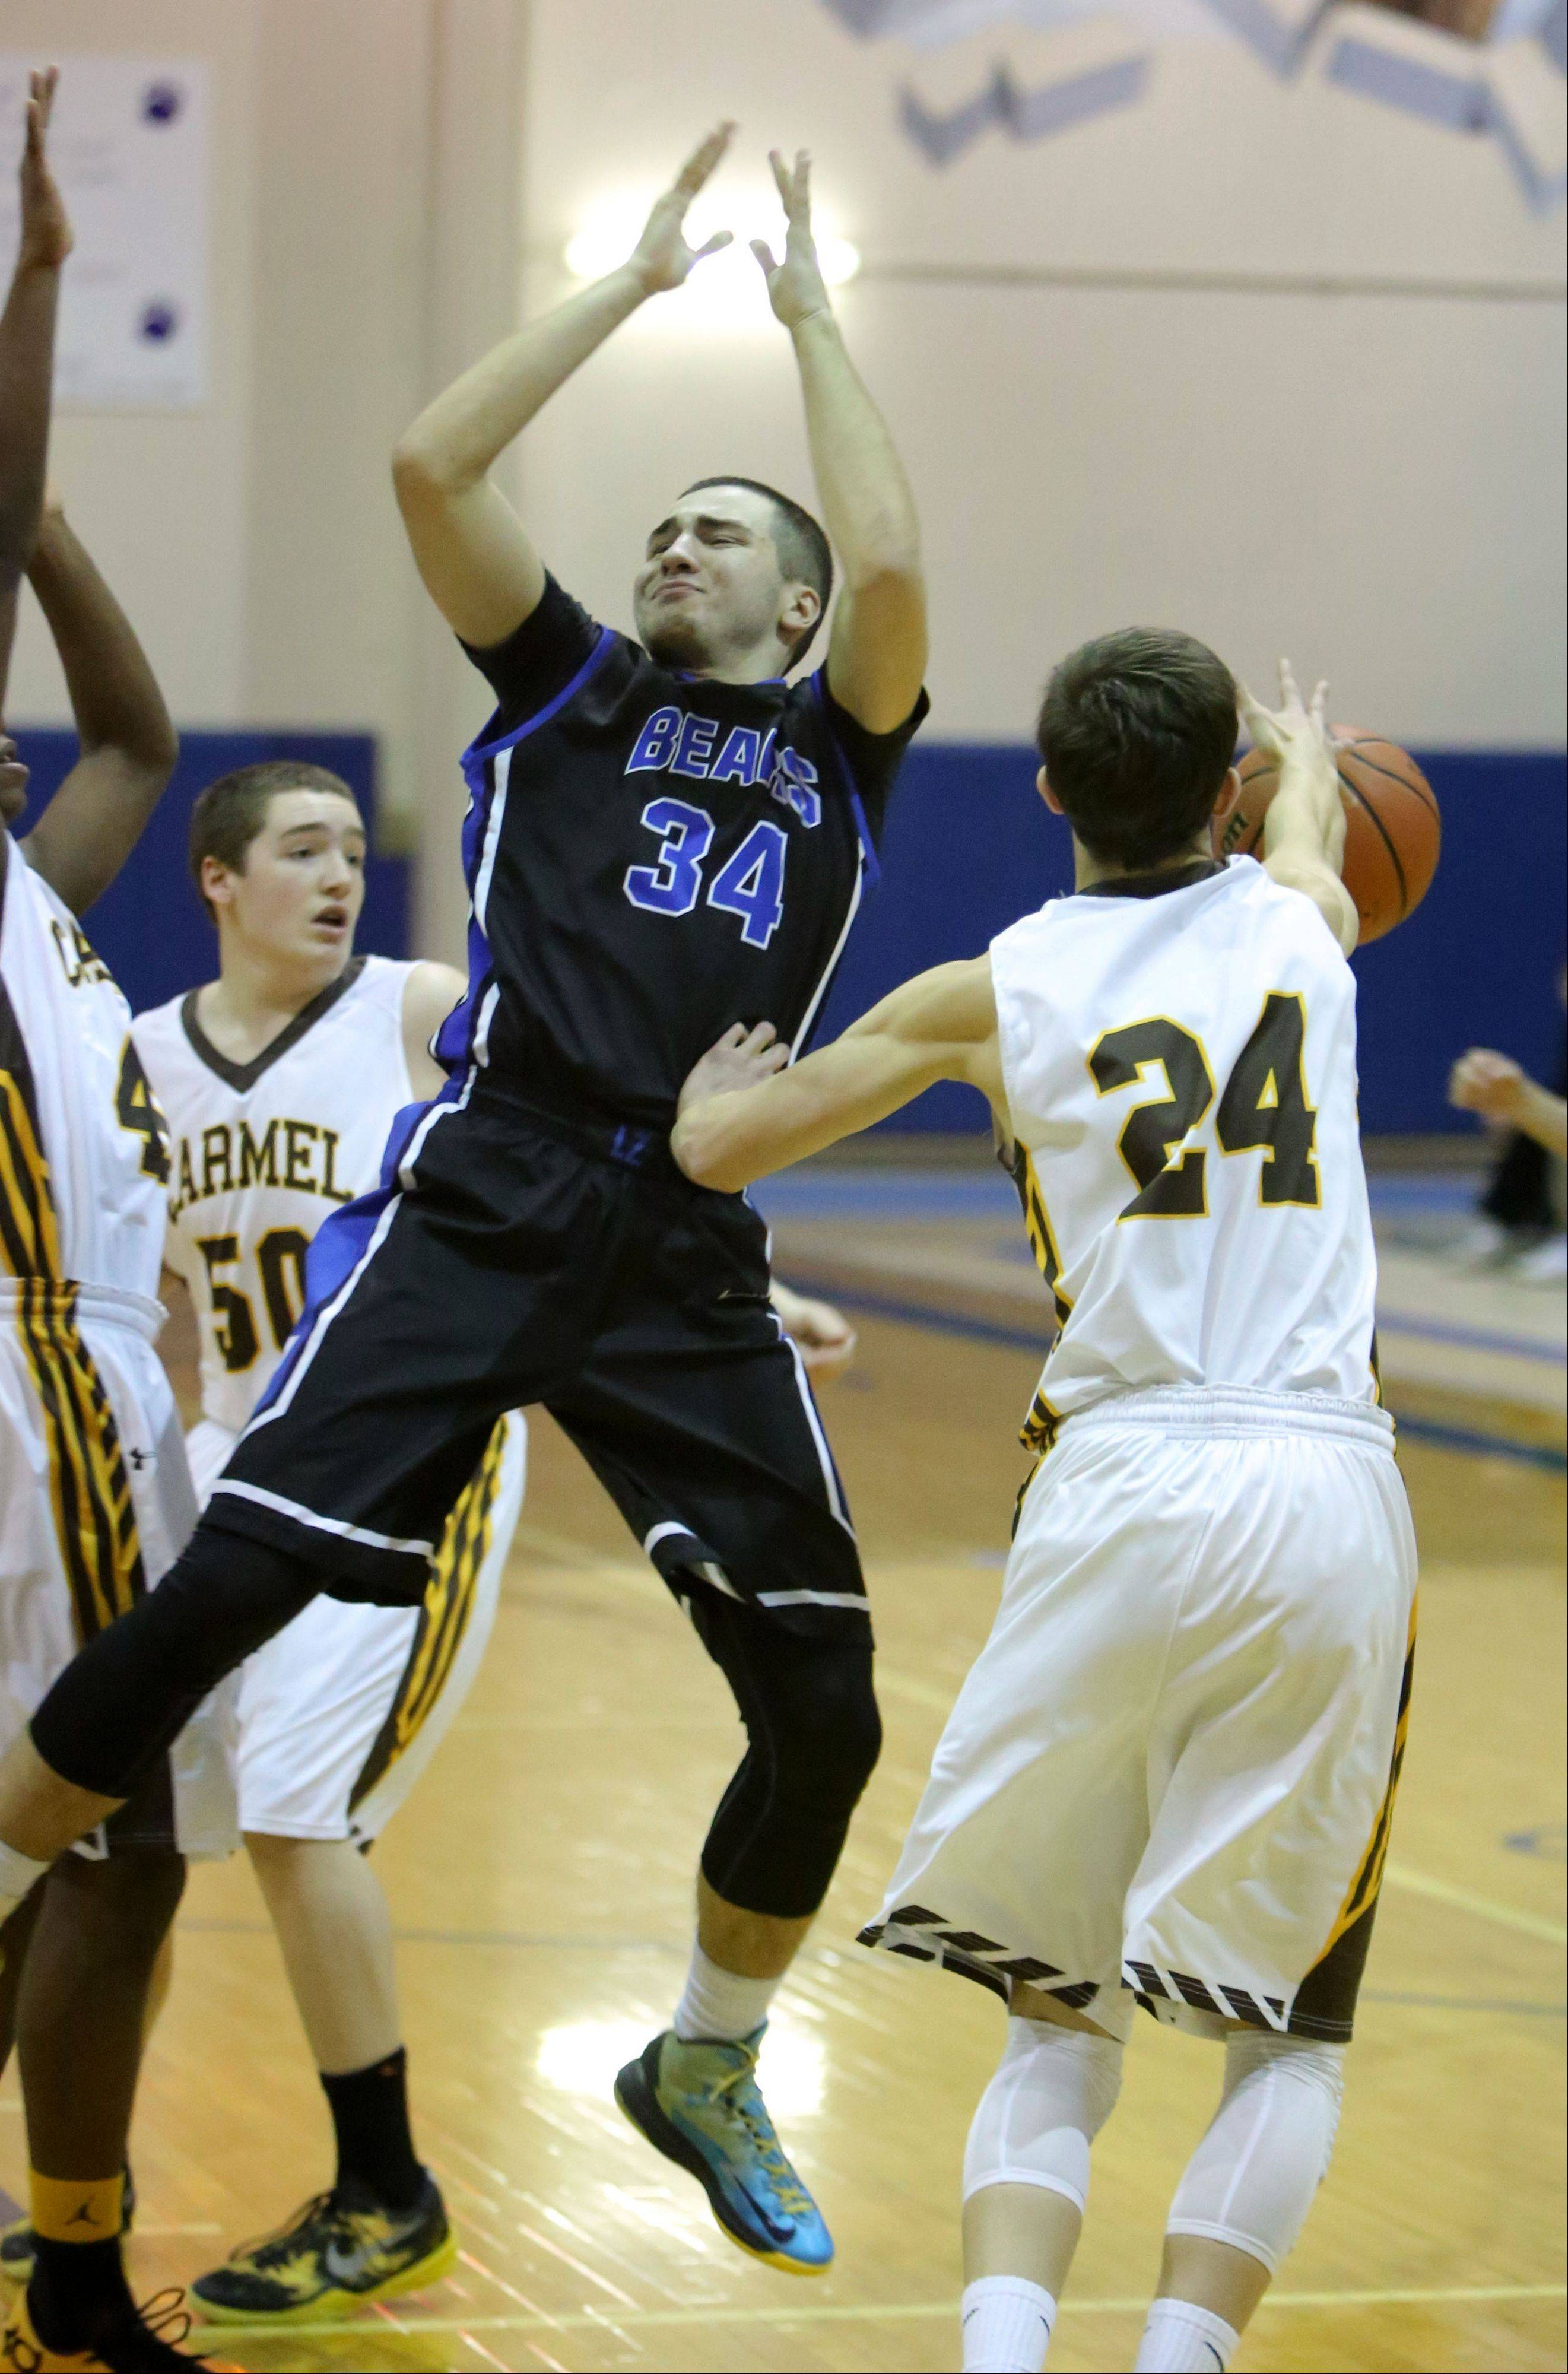 Lake Zurich's Mike Travlos (34) gets his shot blocked by Carmel's Billy Kirby on Monday at Lake Zurich.